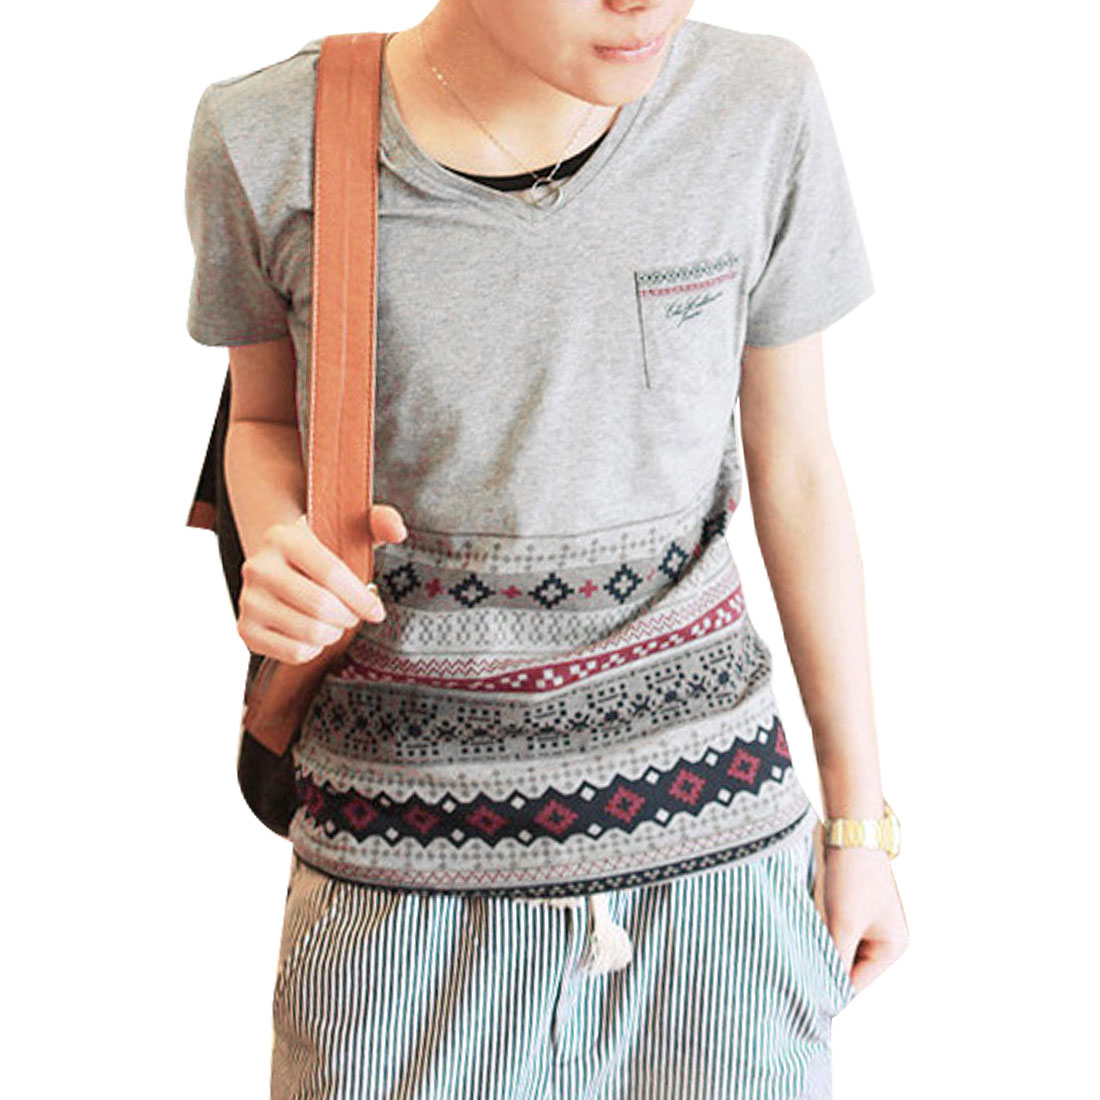 V Neck Short Sleeves Jacquard Pattern Leisure T-Shirt Top Gray M for Men